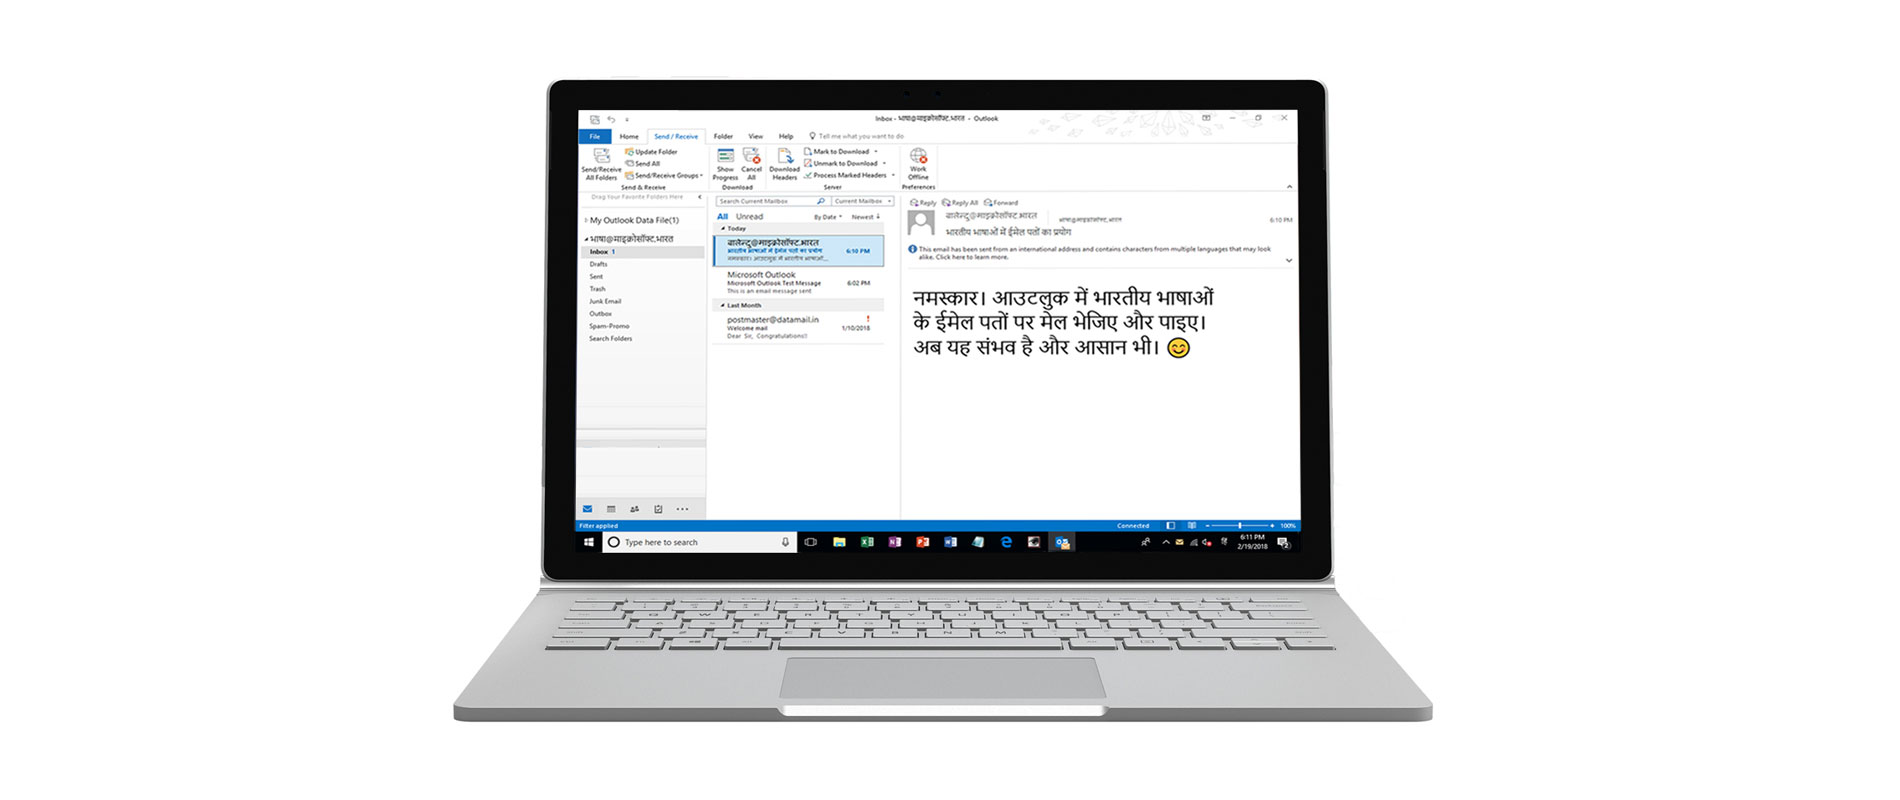 Microsoft support Indian languages